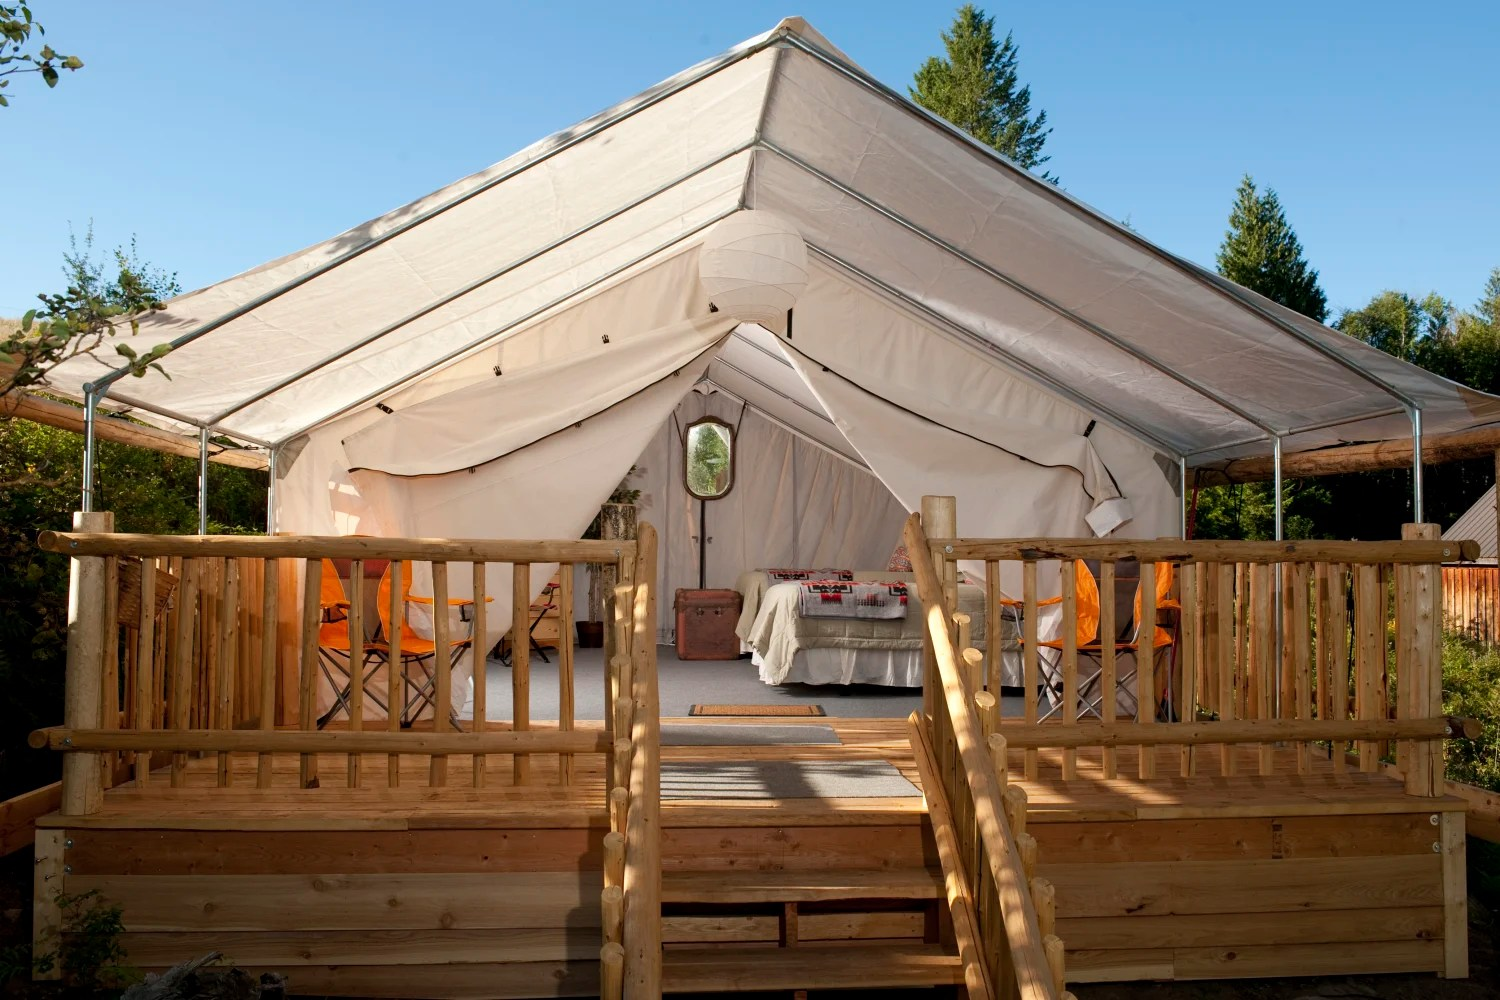 Https Www Seattlemet Com Travel And Outdoors 18 Amazing Northwest Cabin Rentals Washington State